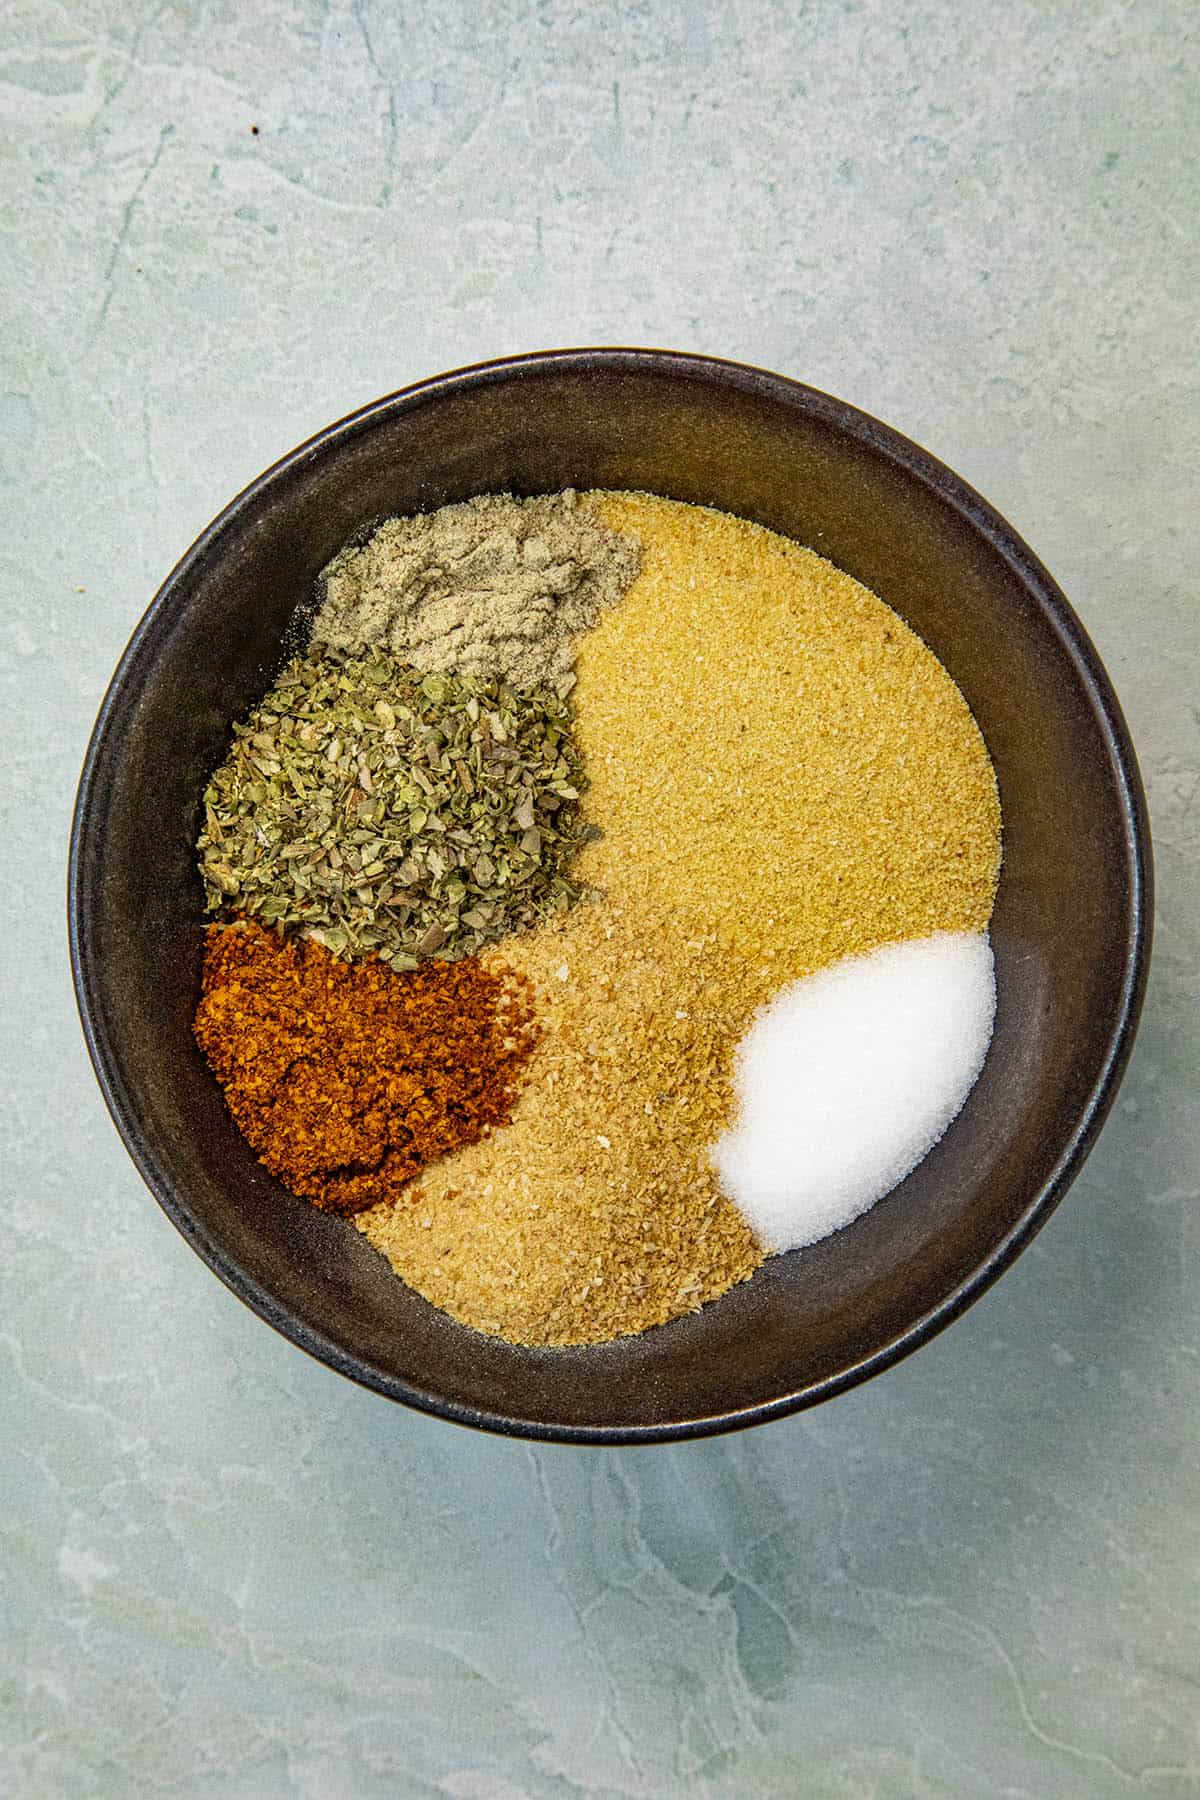 Adobo Seasoning ingredients in a bowl, ready to mix